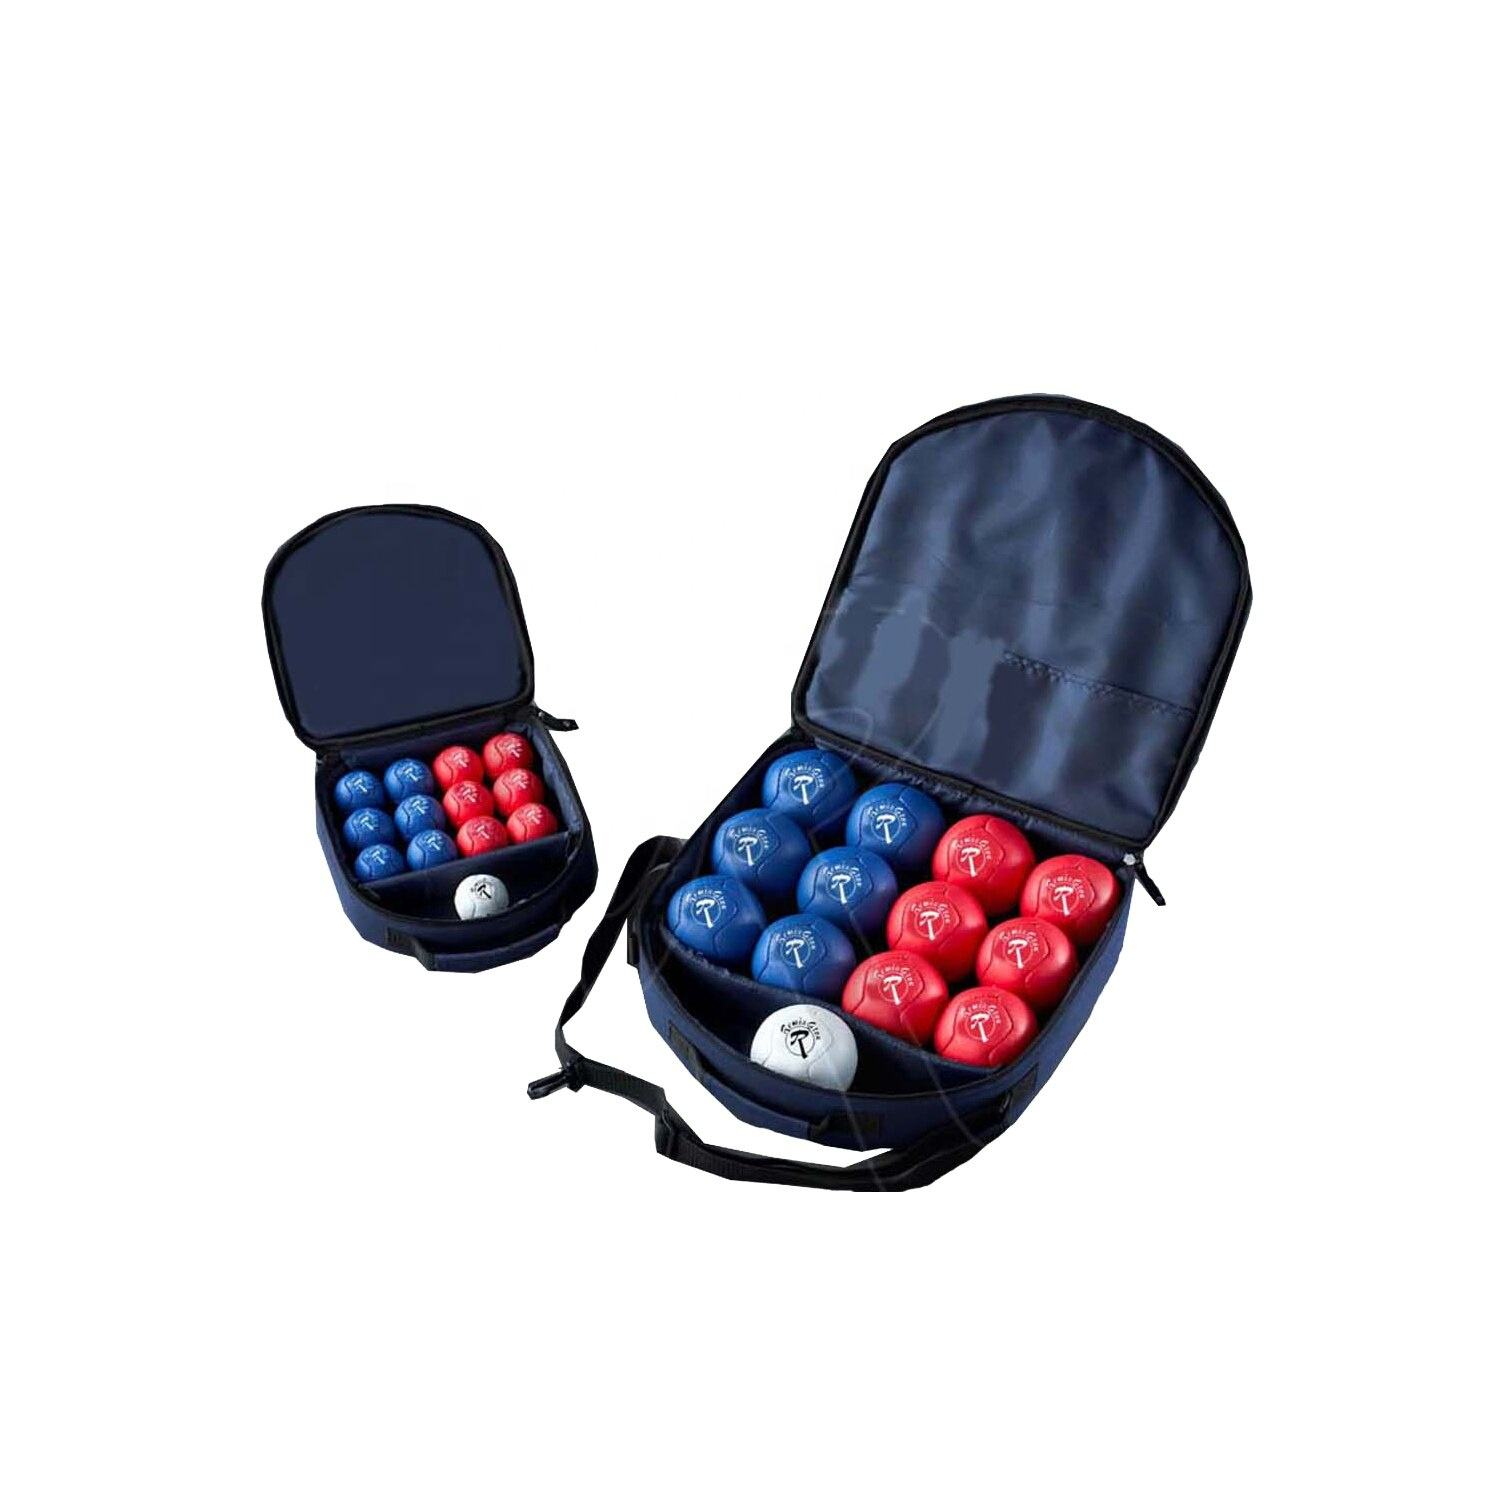 Boccia Ball set new materials wholesale set of 13 balls.